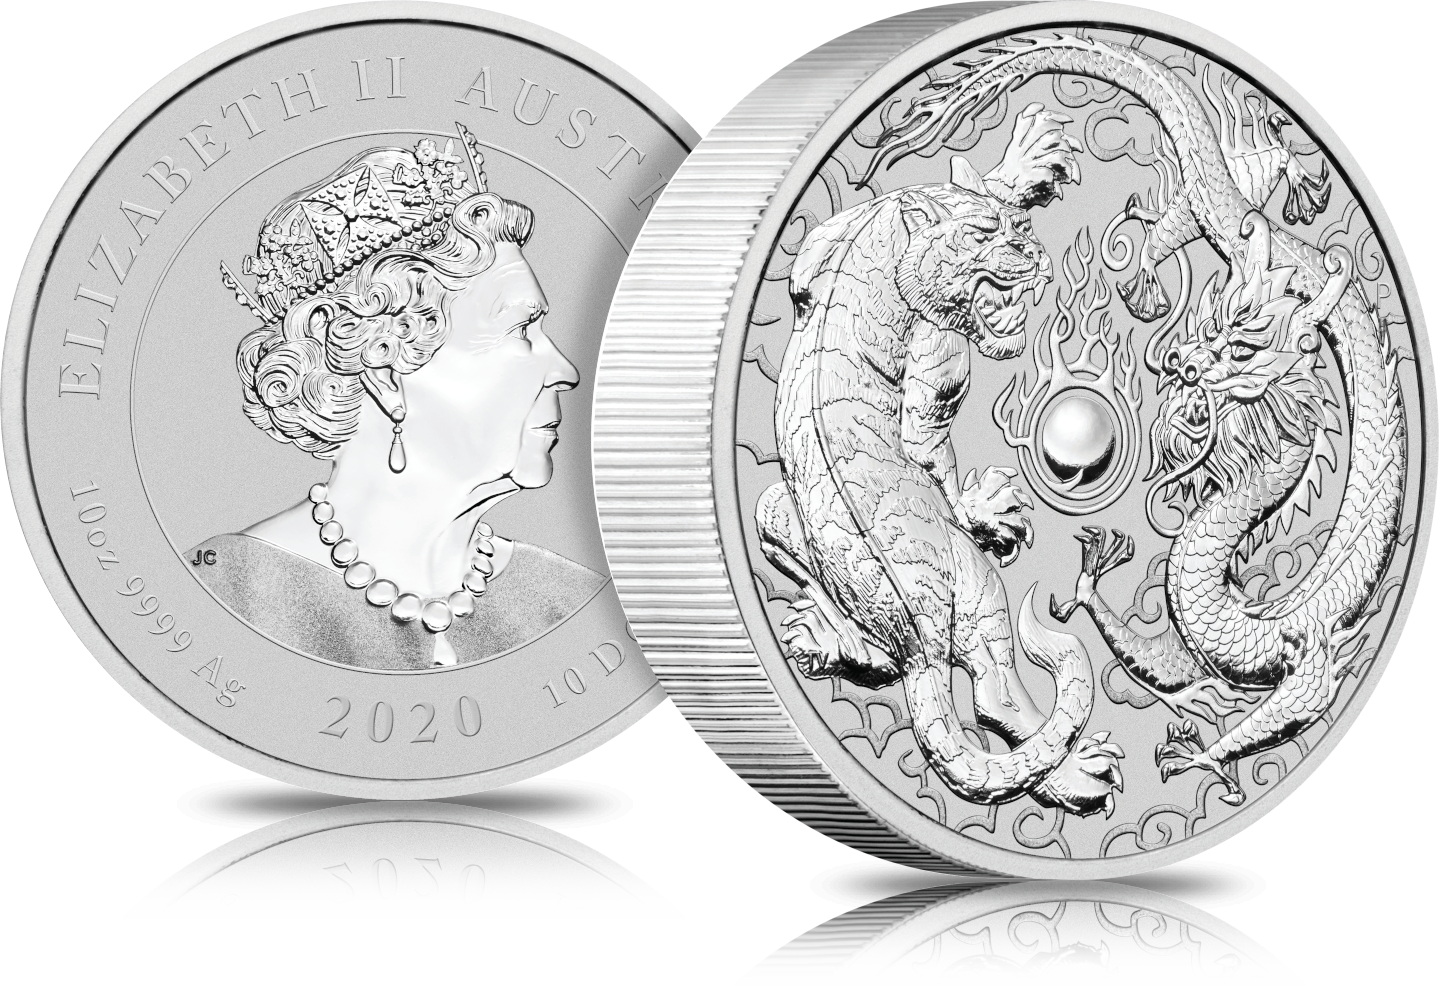 2020 10 Oz Australia Dragon Tiger 9999 Silver Bu Coin In 2020 Dragon Antique Coins Silver Dragon